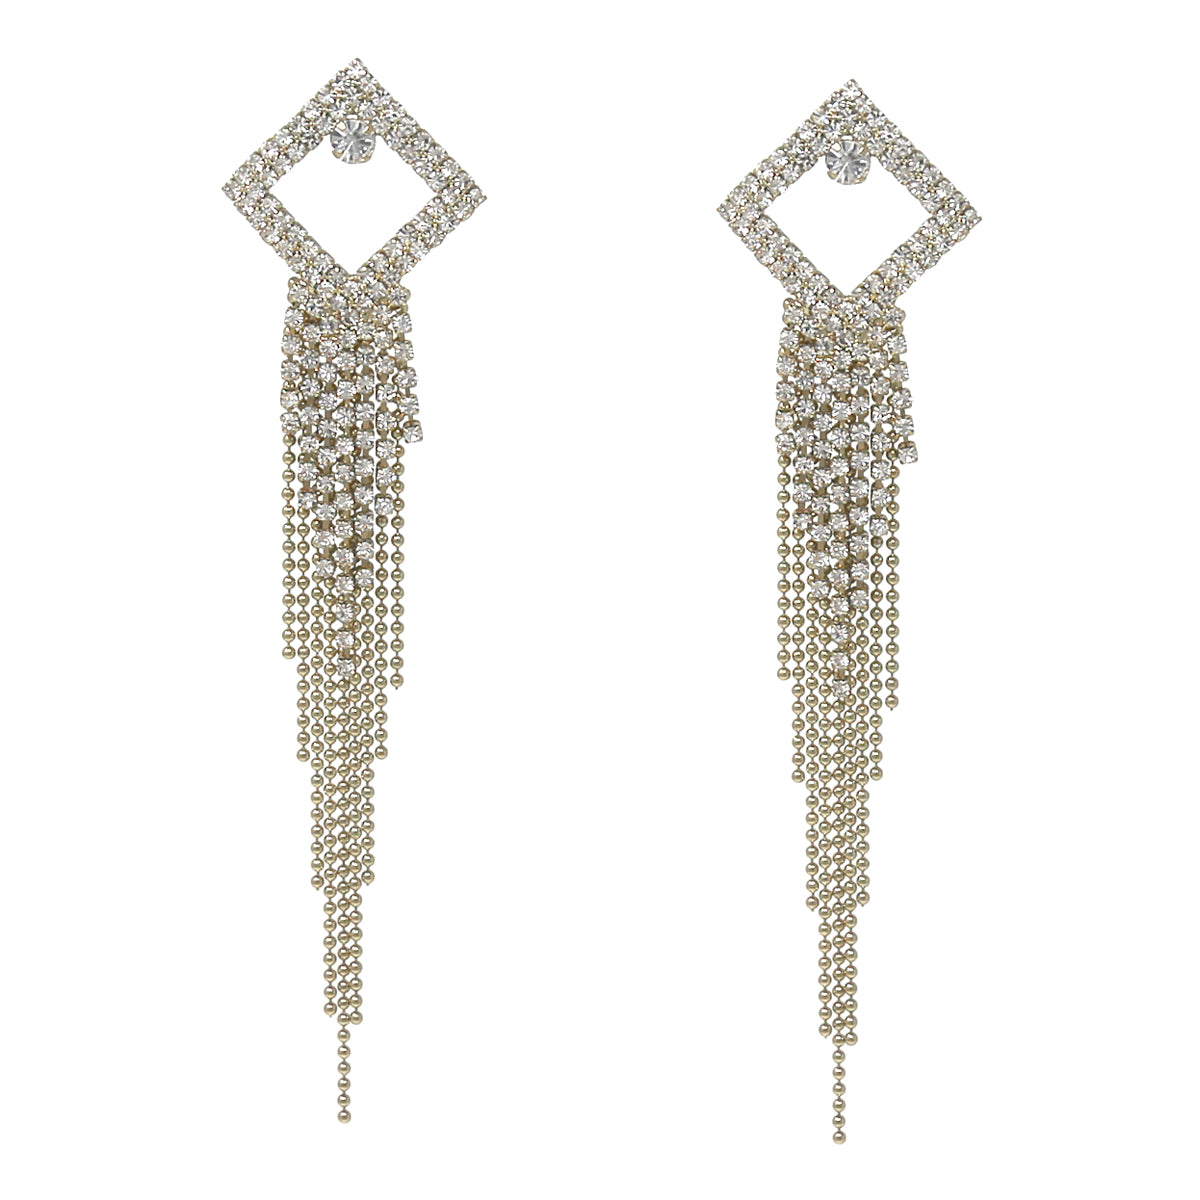 Rhinestone Pave Square Ball Chain Fringe Drop Earrings